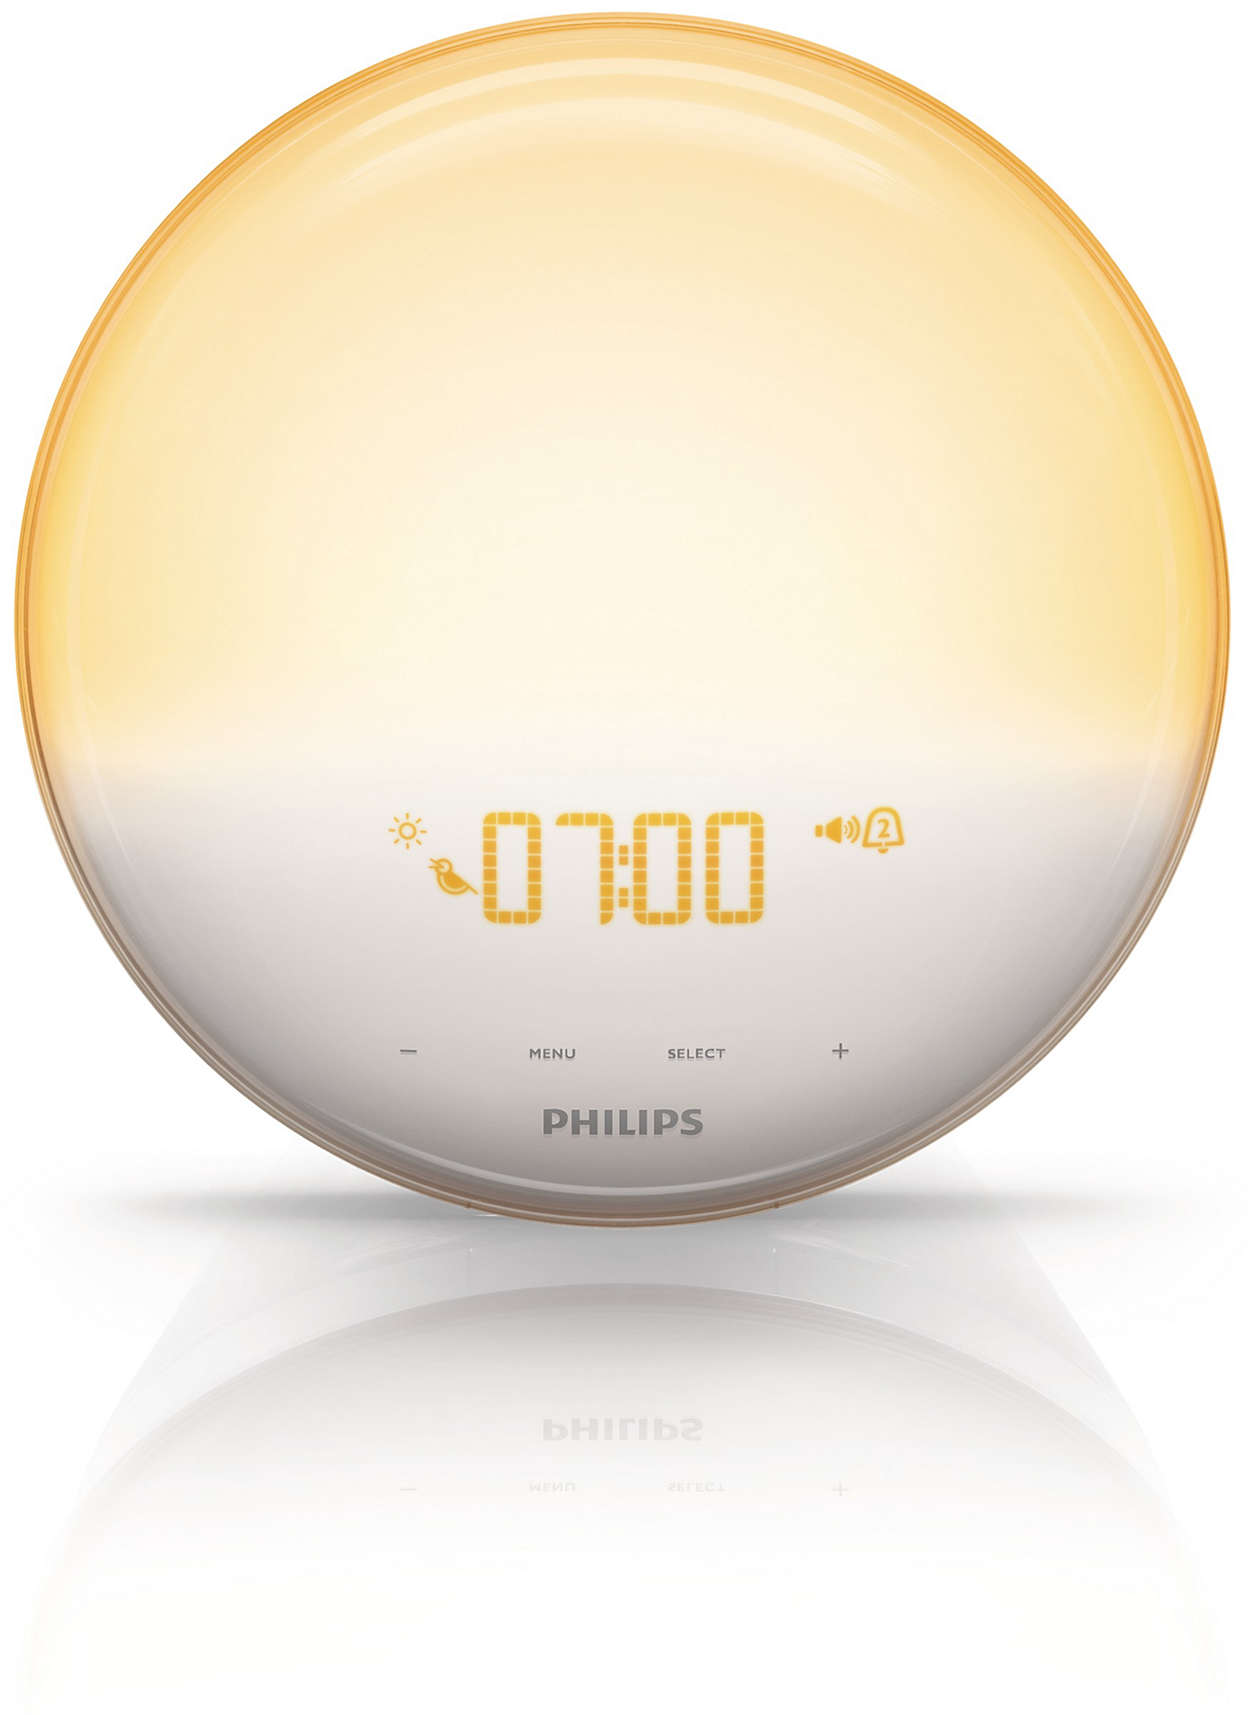 2016 holiday gift guide giveaway philips wake up light. Black Bedroom Furniture Sets. Home Design Ideas